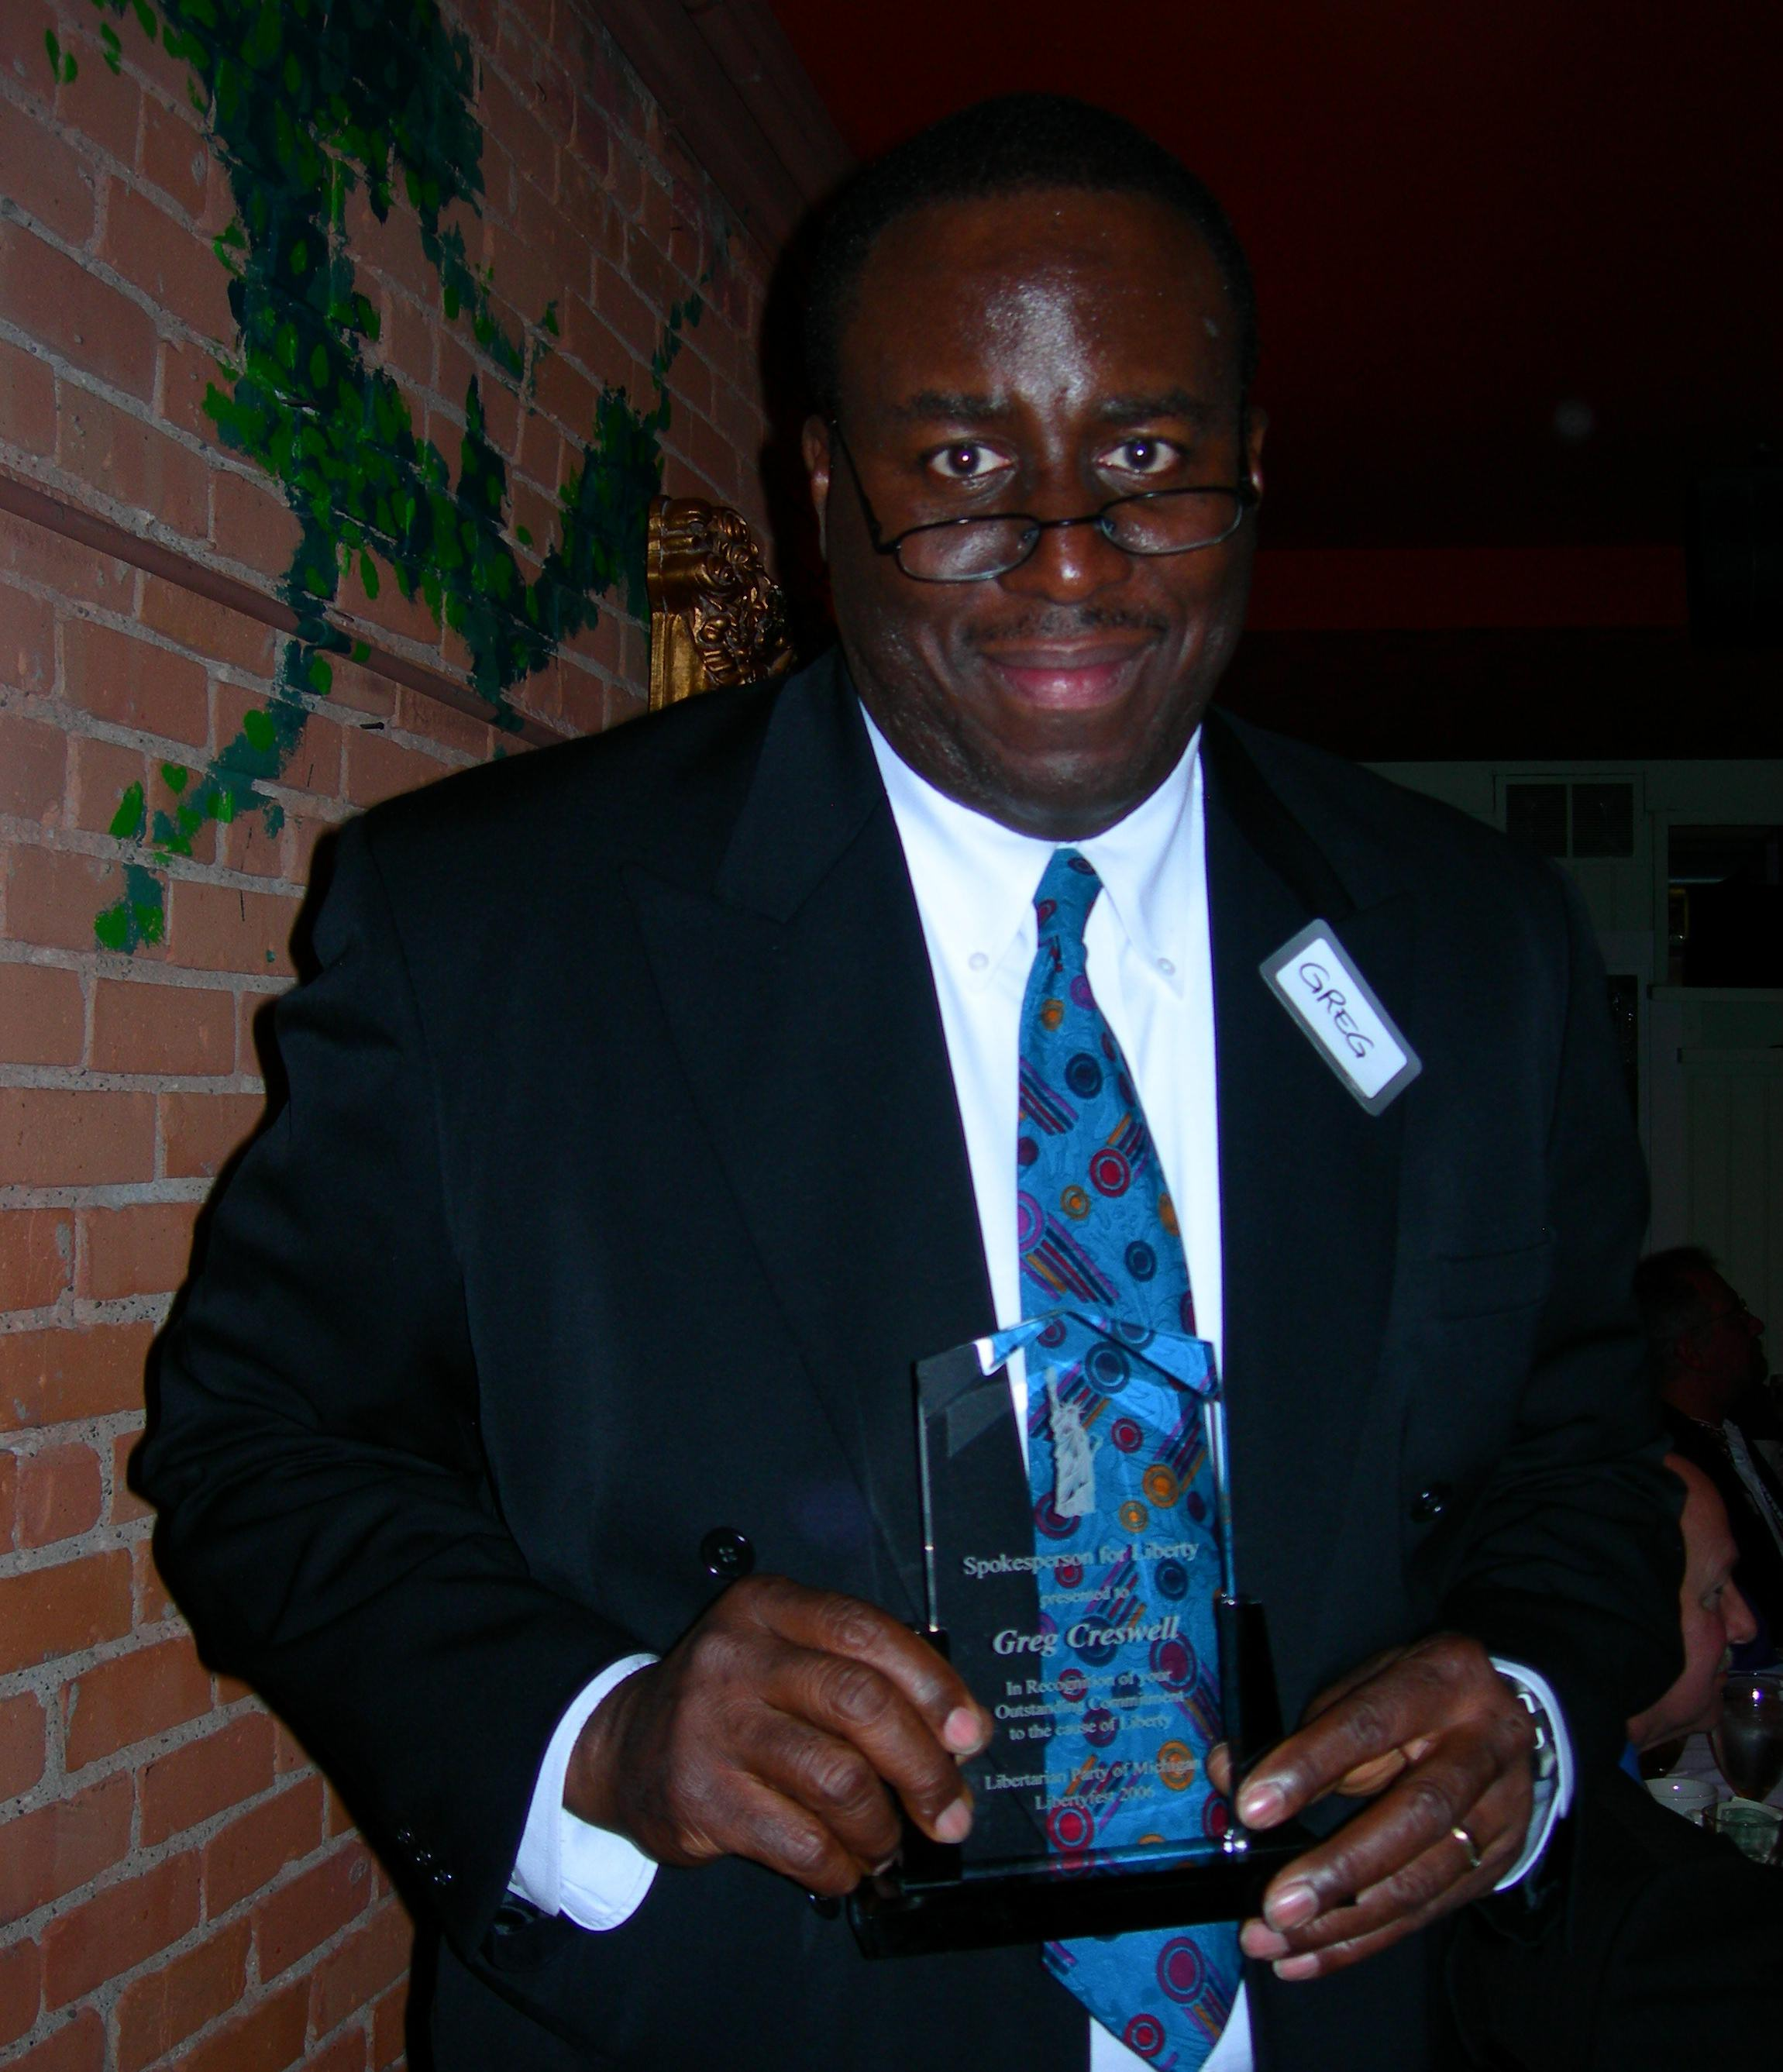 Gregory Creswell 2006 Defender of Liberty Award winner.